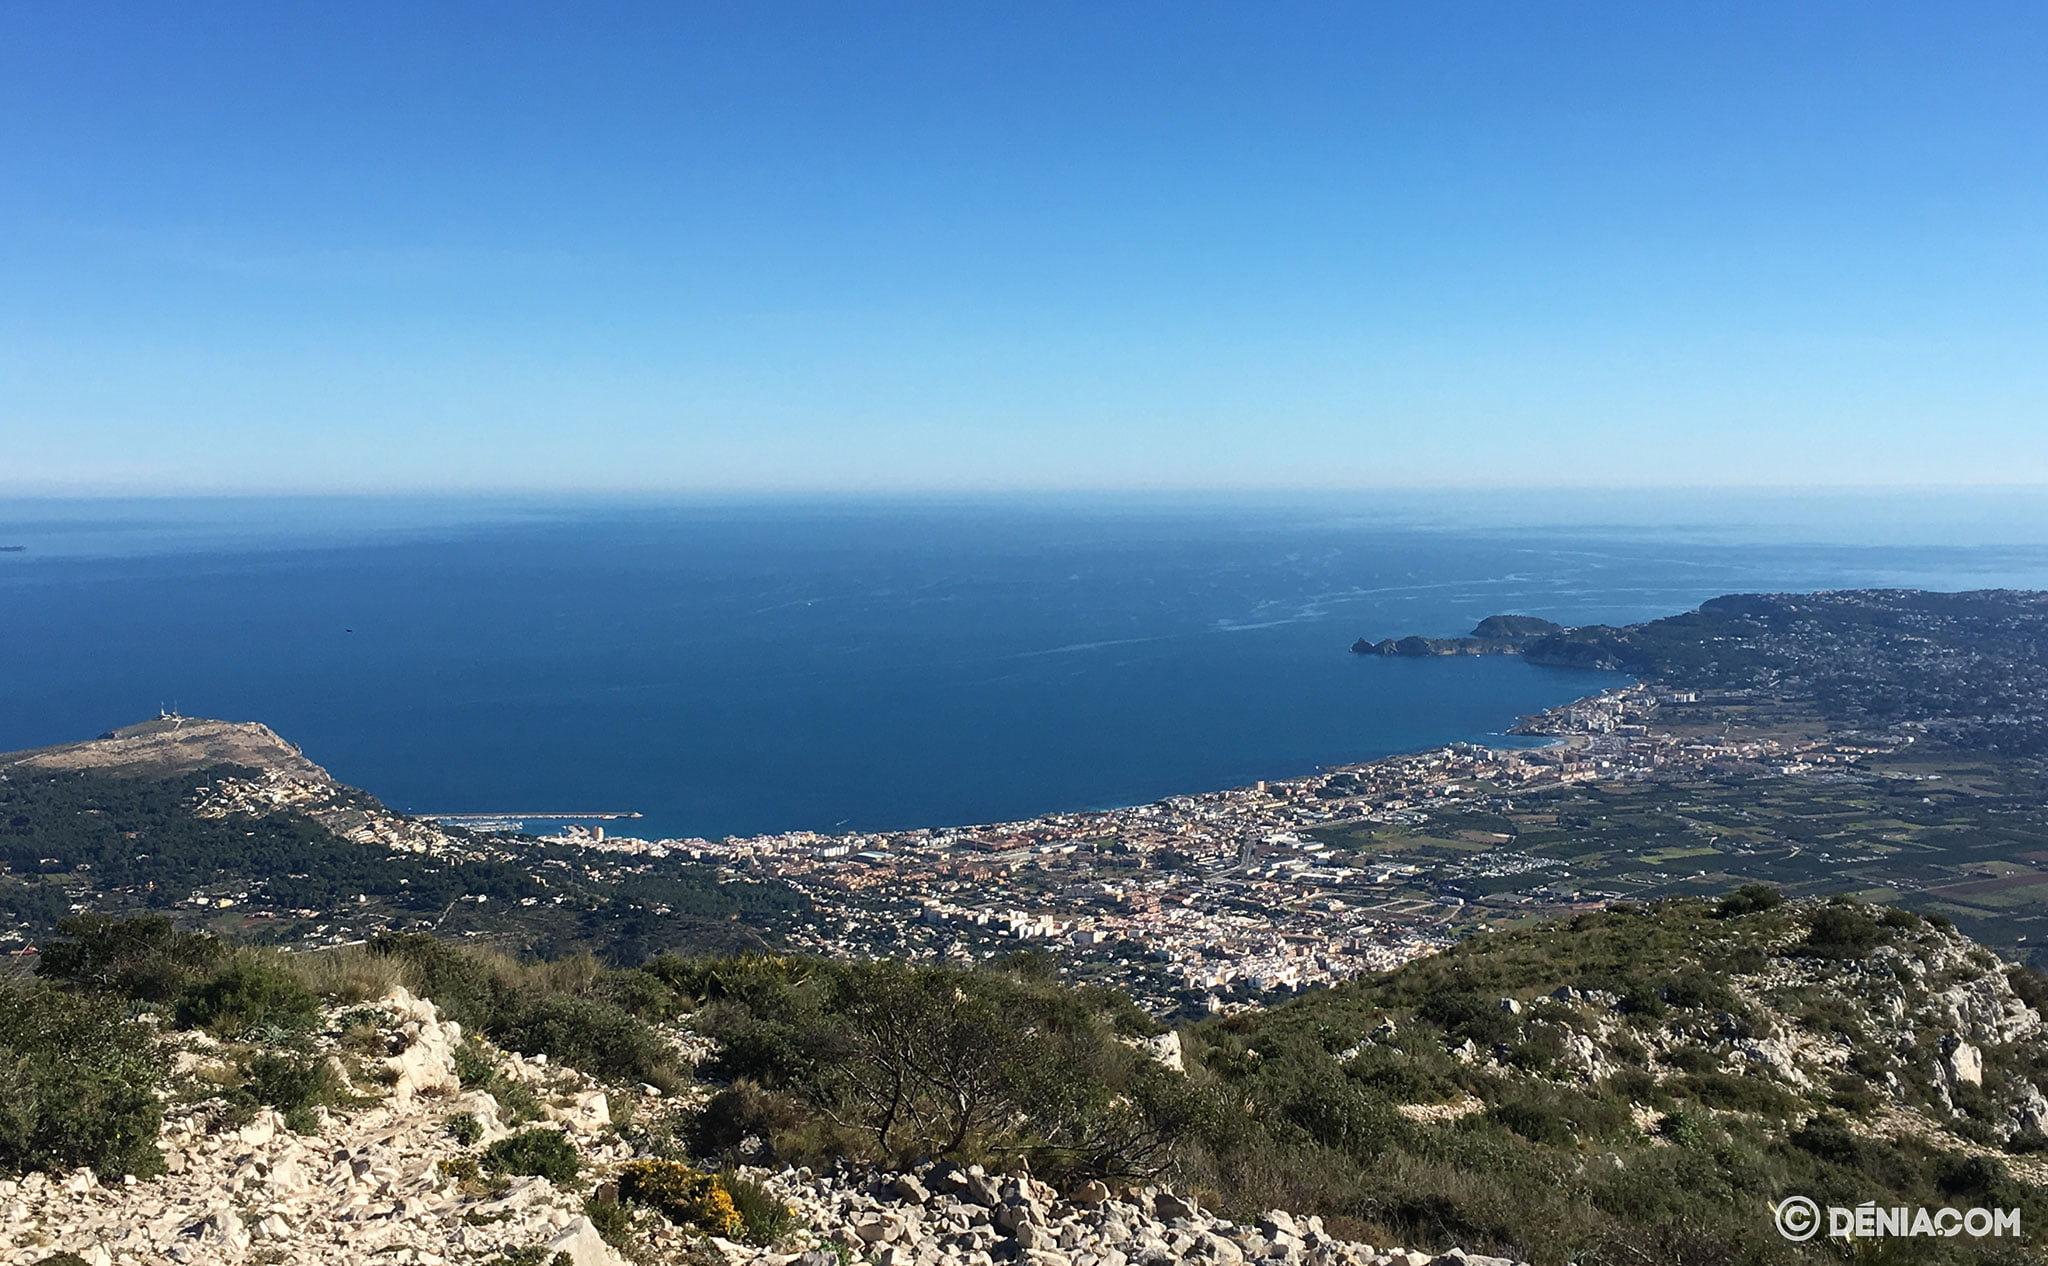 Views of Jávea on the route up Montgó through the shooting range